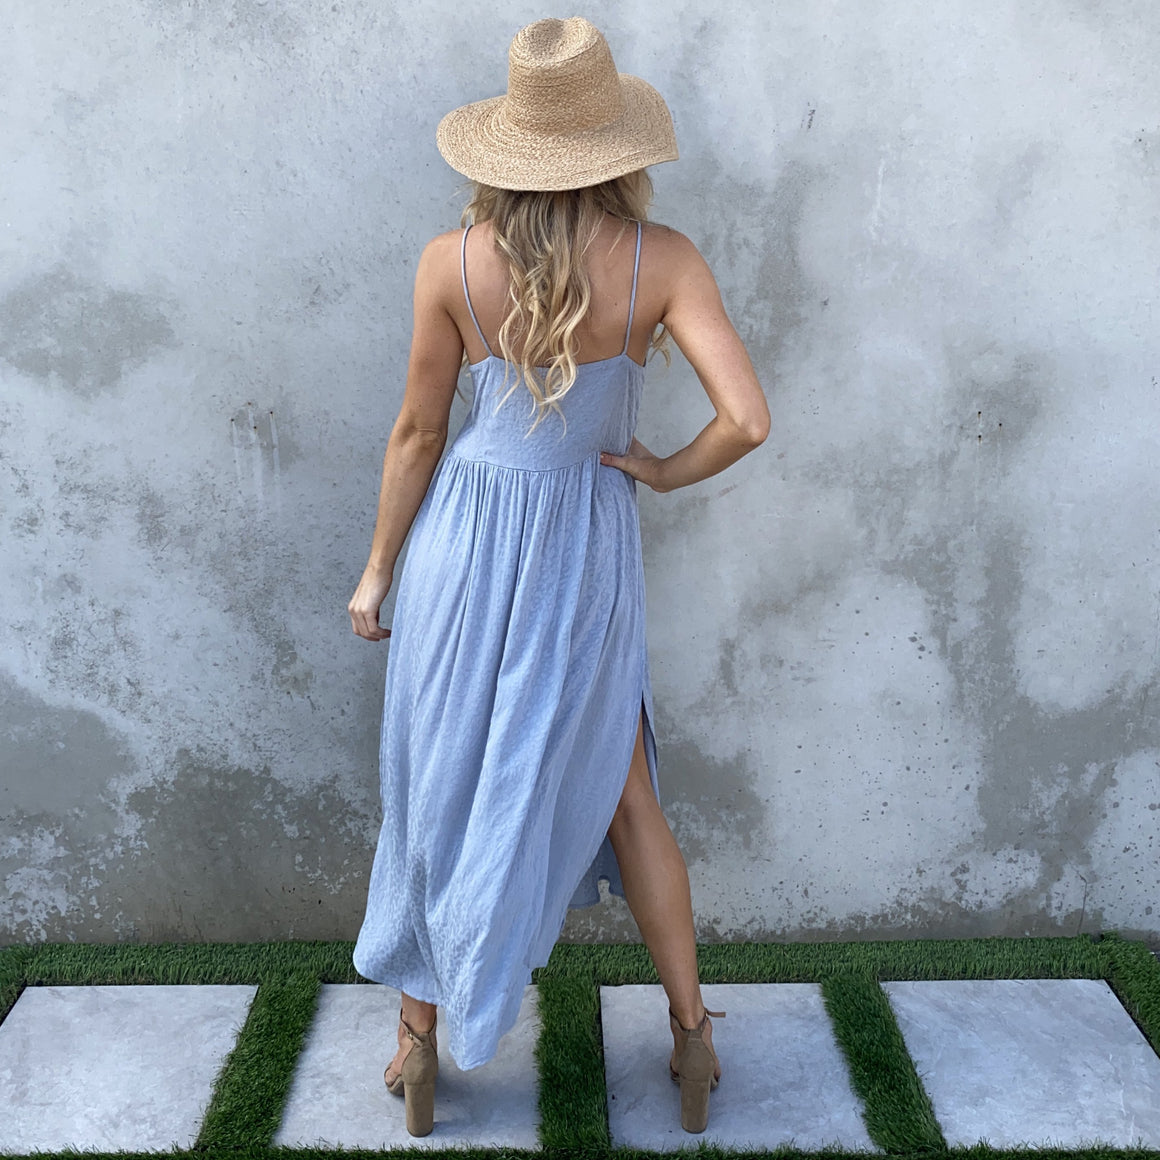 Always Content Cheetah Blue Maxi Dress - Dainty Hooligan